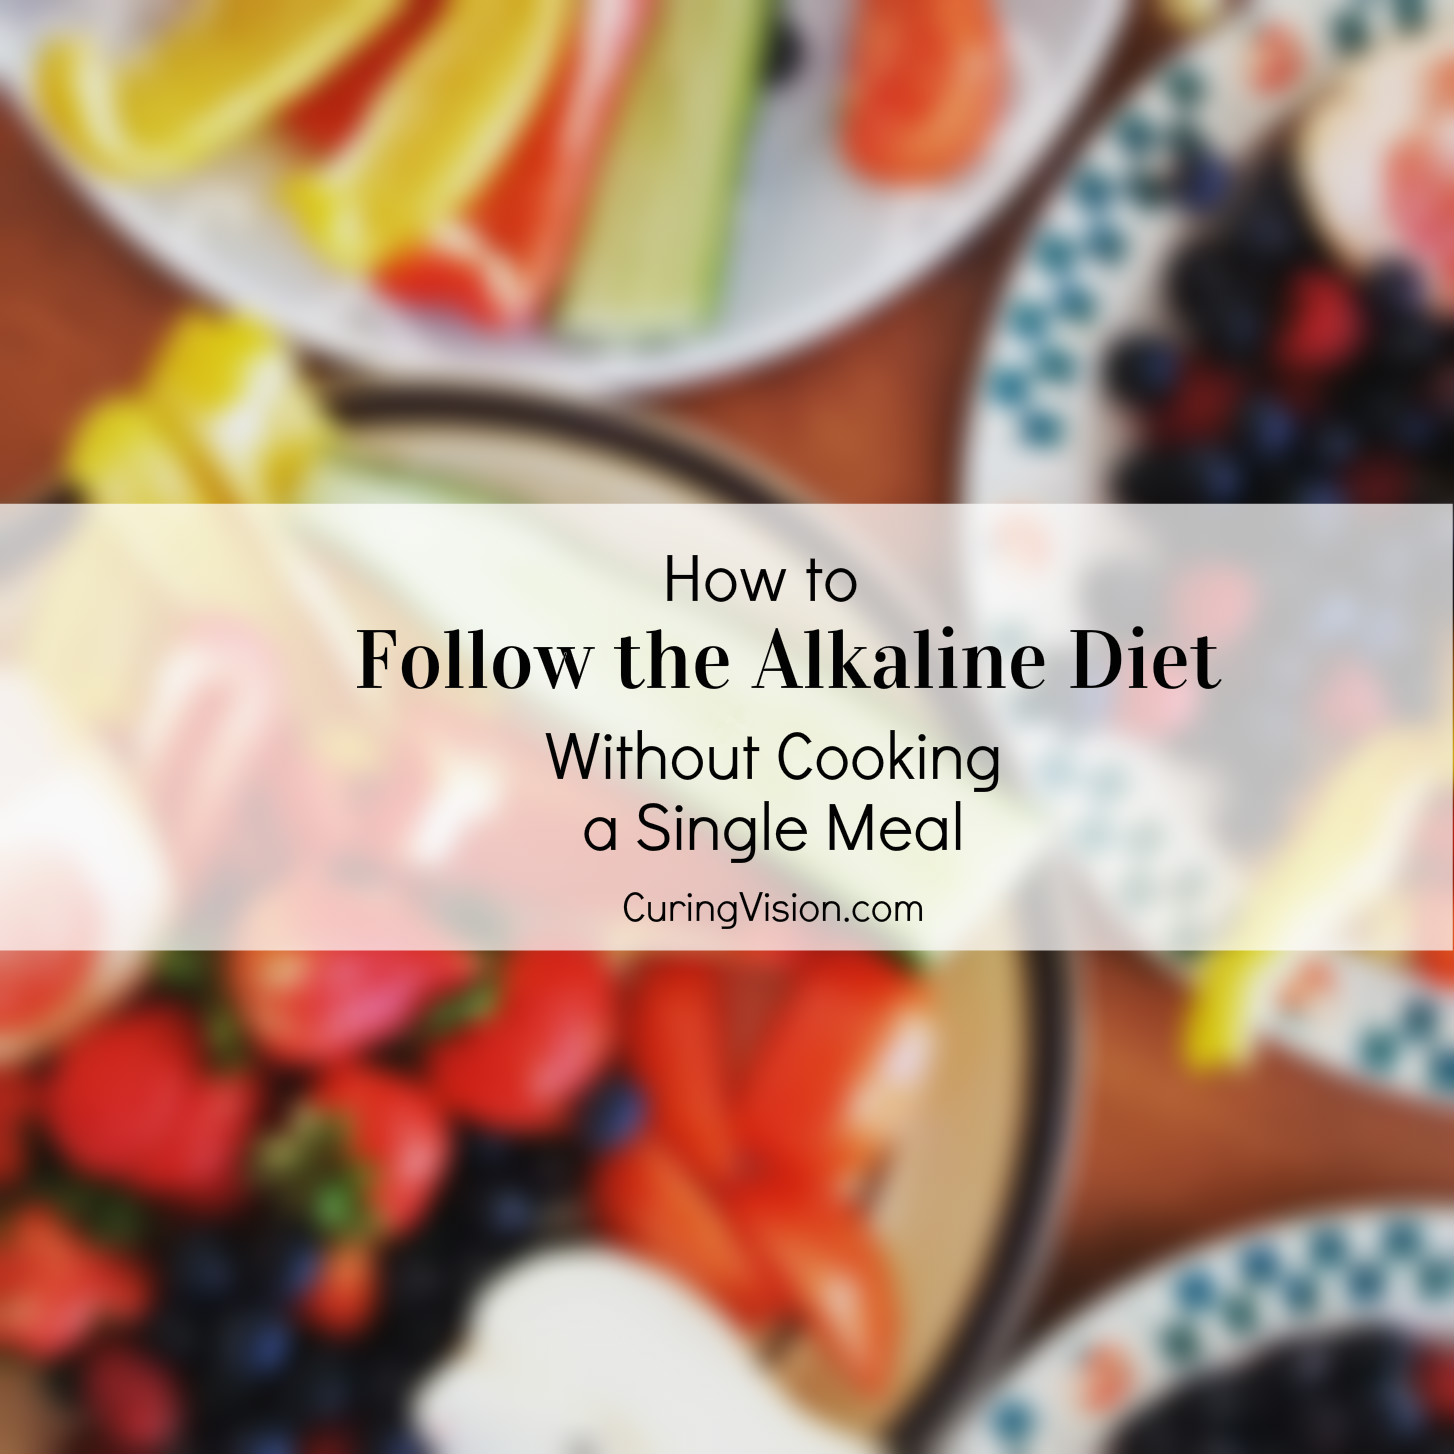 How to Follow the Alkaline Diet Without Cooking a Single Meal